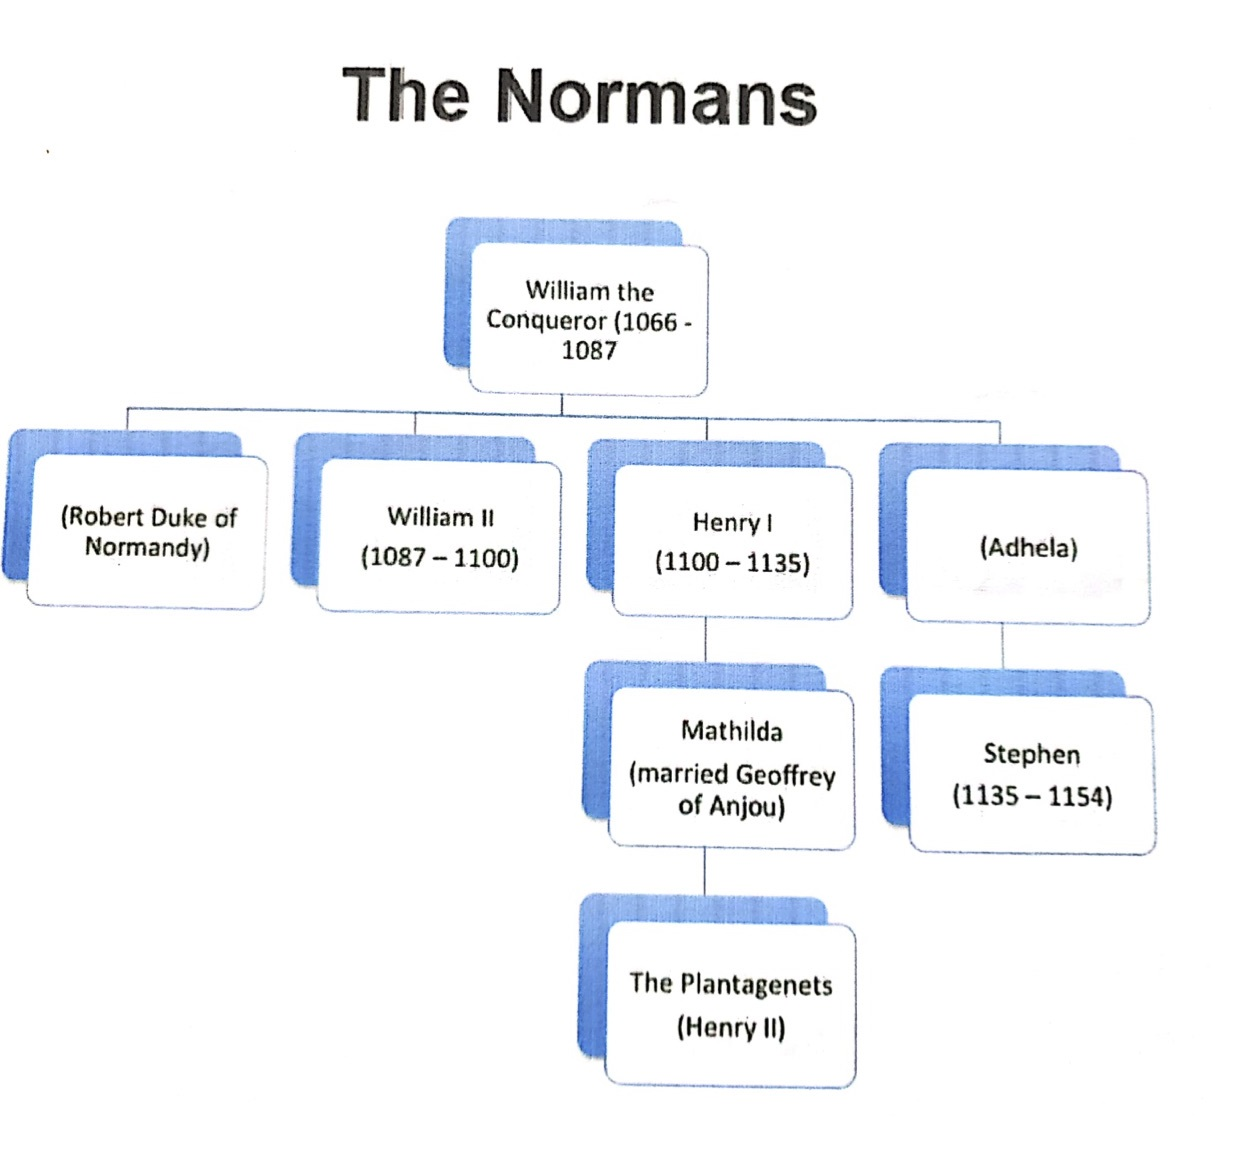 mappa concettuale visual map the Normans